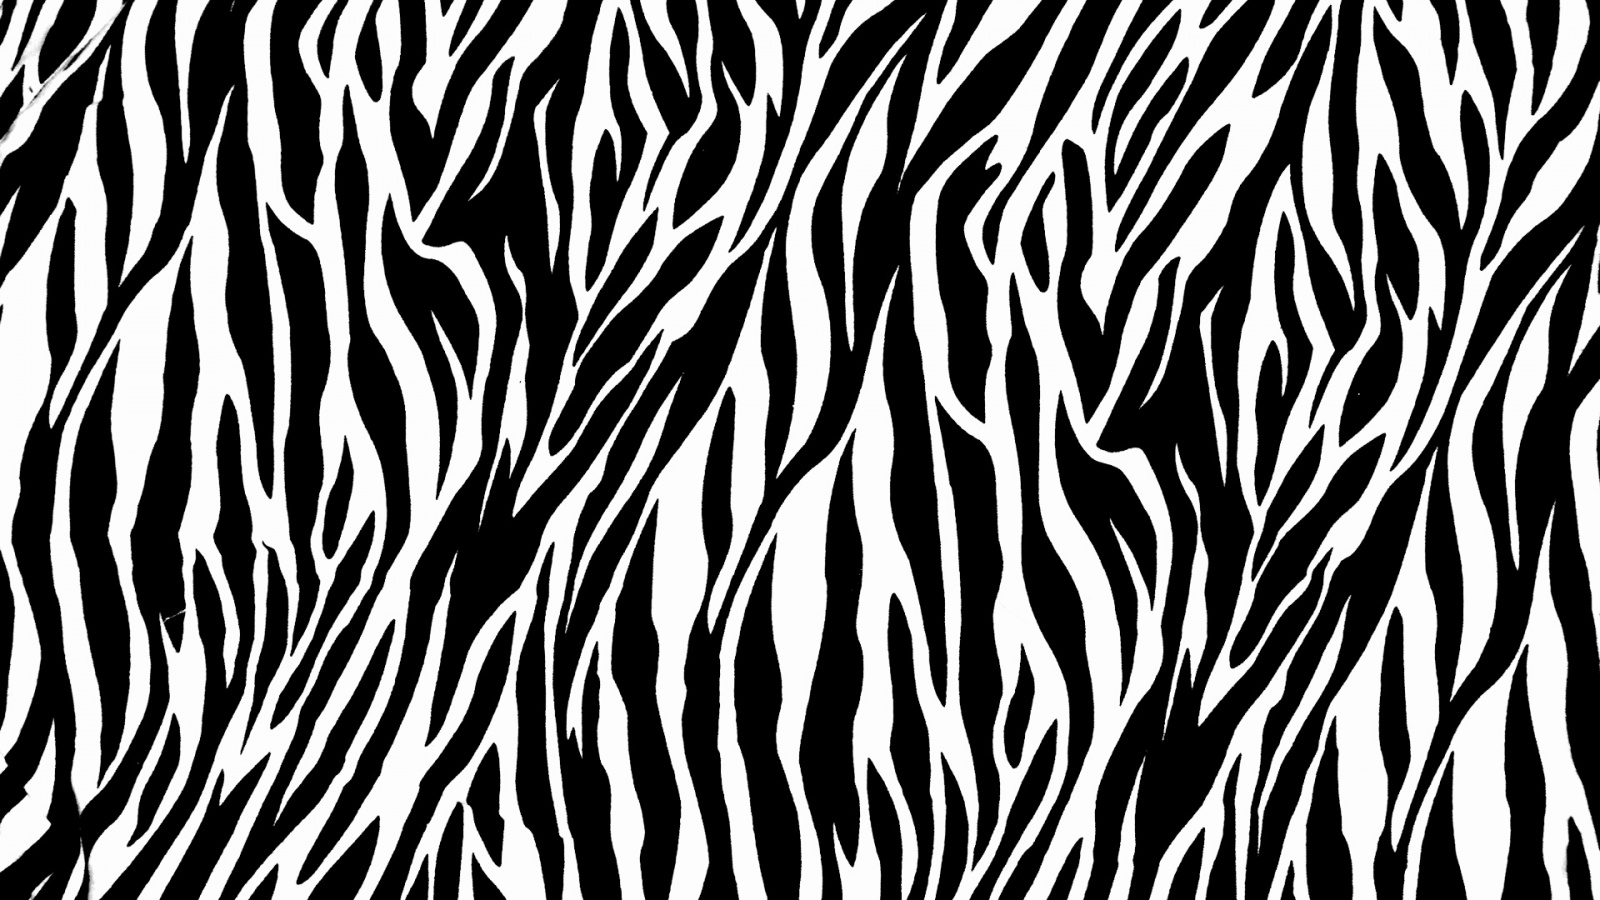 Zebra Background wallpaper 1600x900 59324